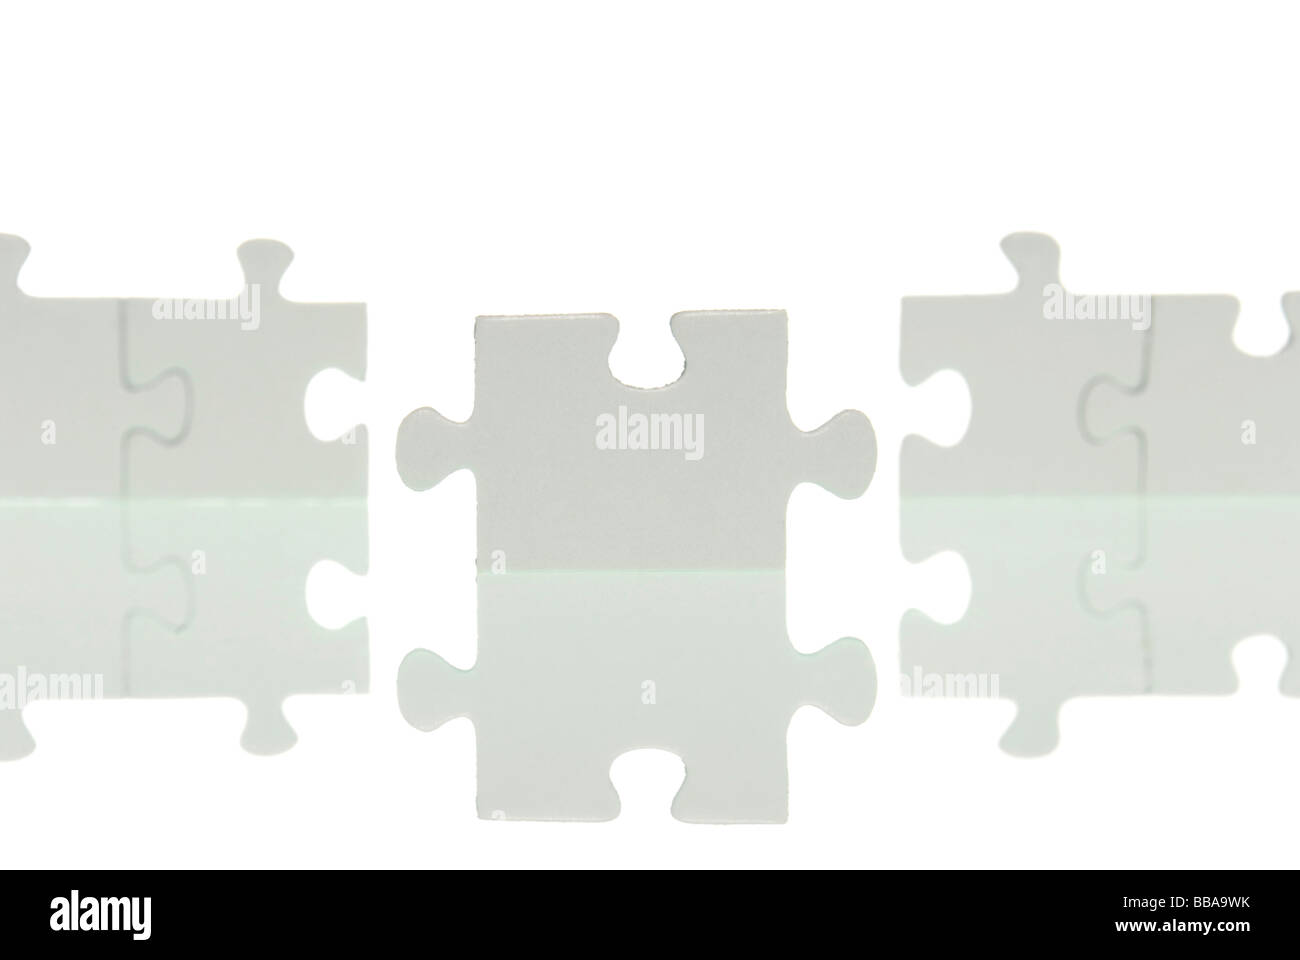 A row of puzzle pieces with a joining piece - Stock Image